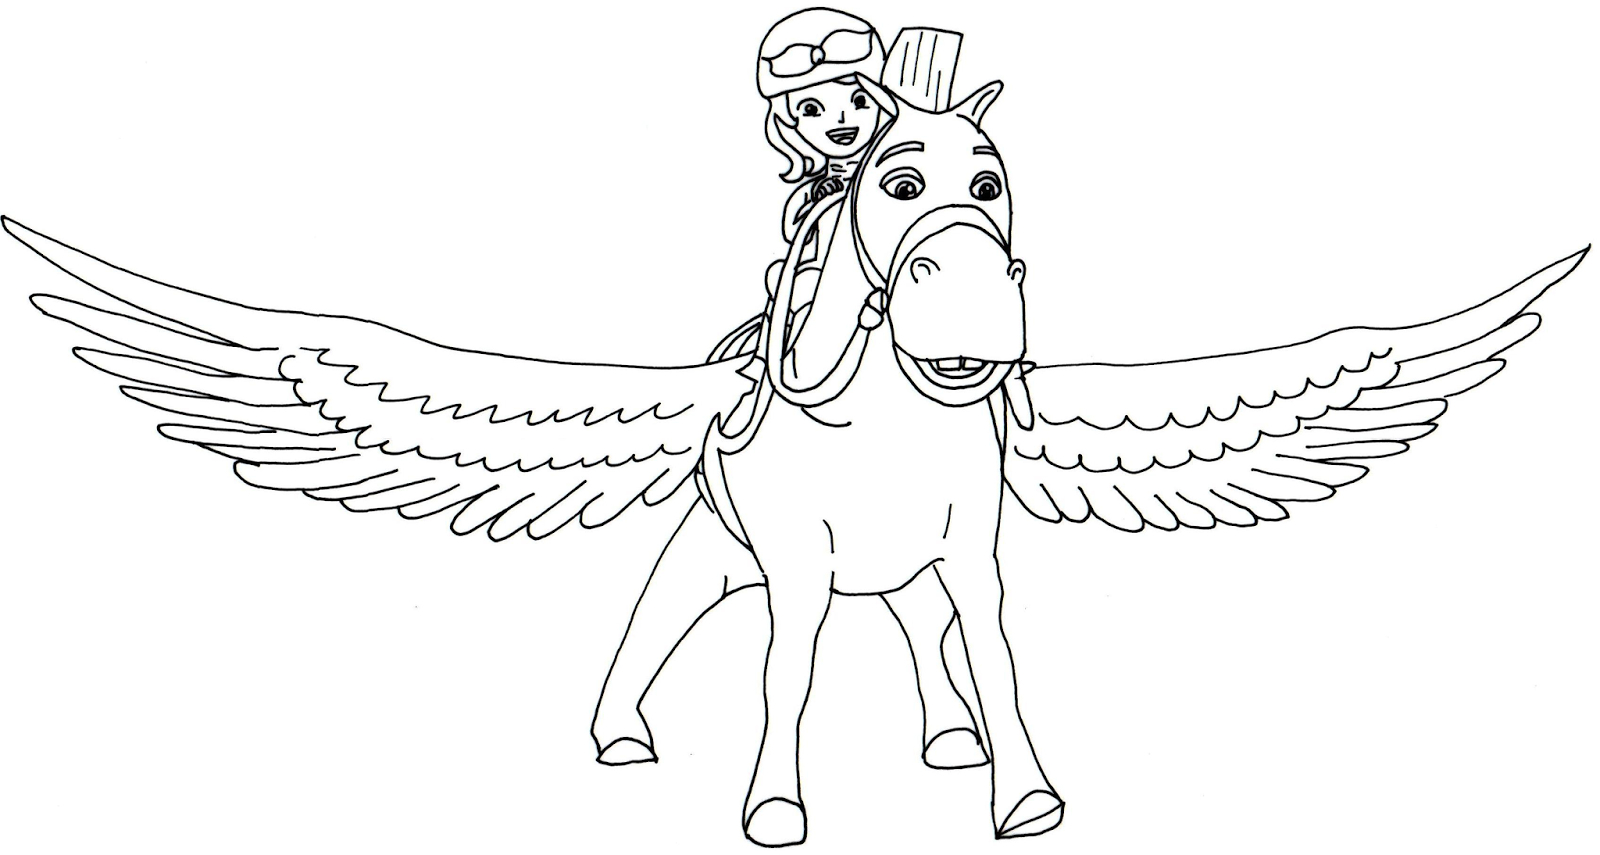 Sofia The First Coloring Page Sofia The First Coloring Pages Minimus Flying Sofia The First 16769